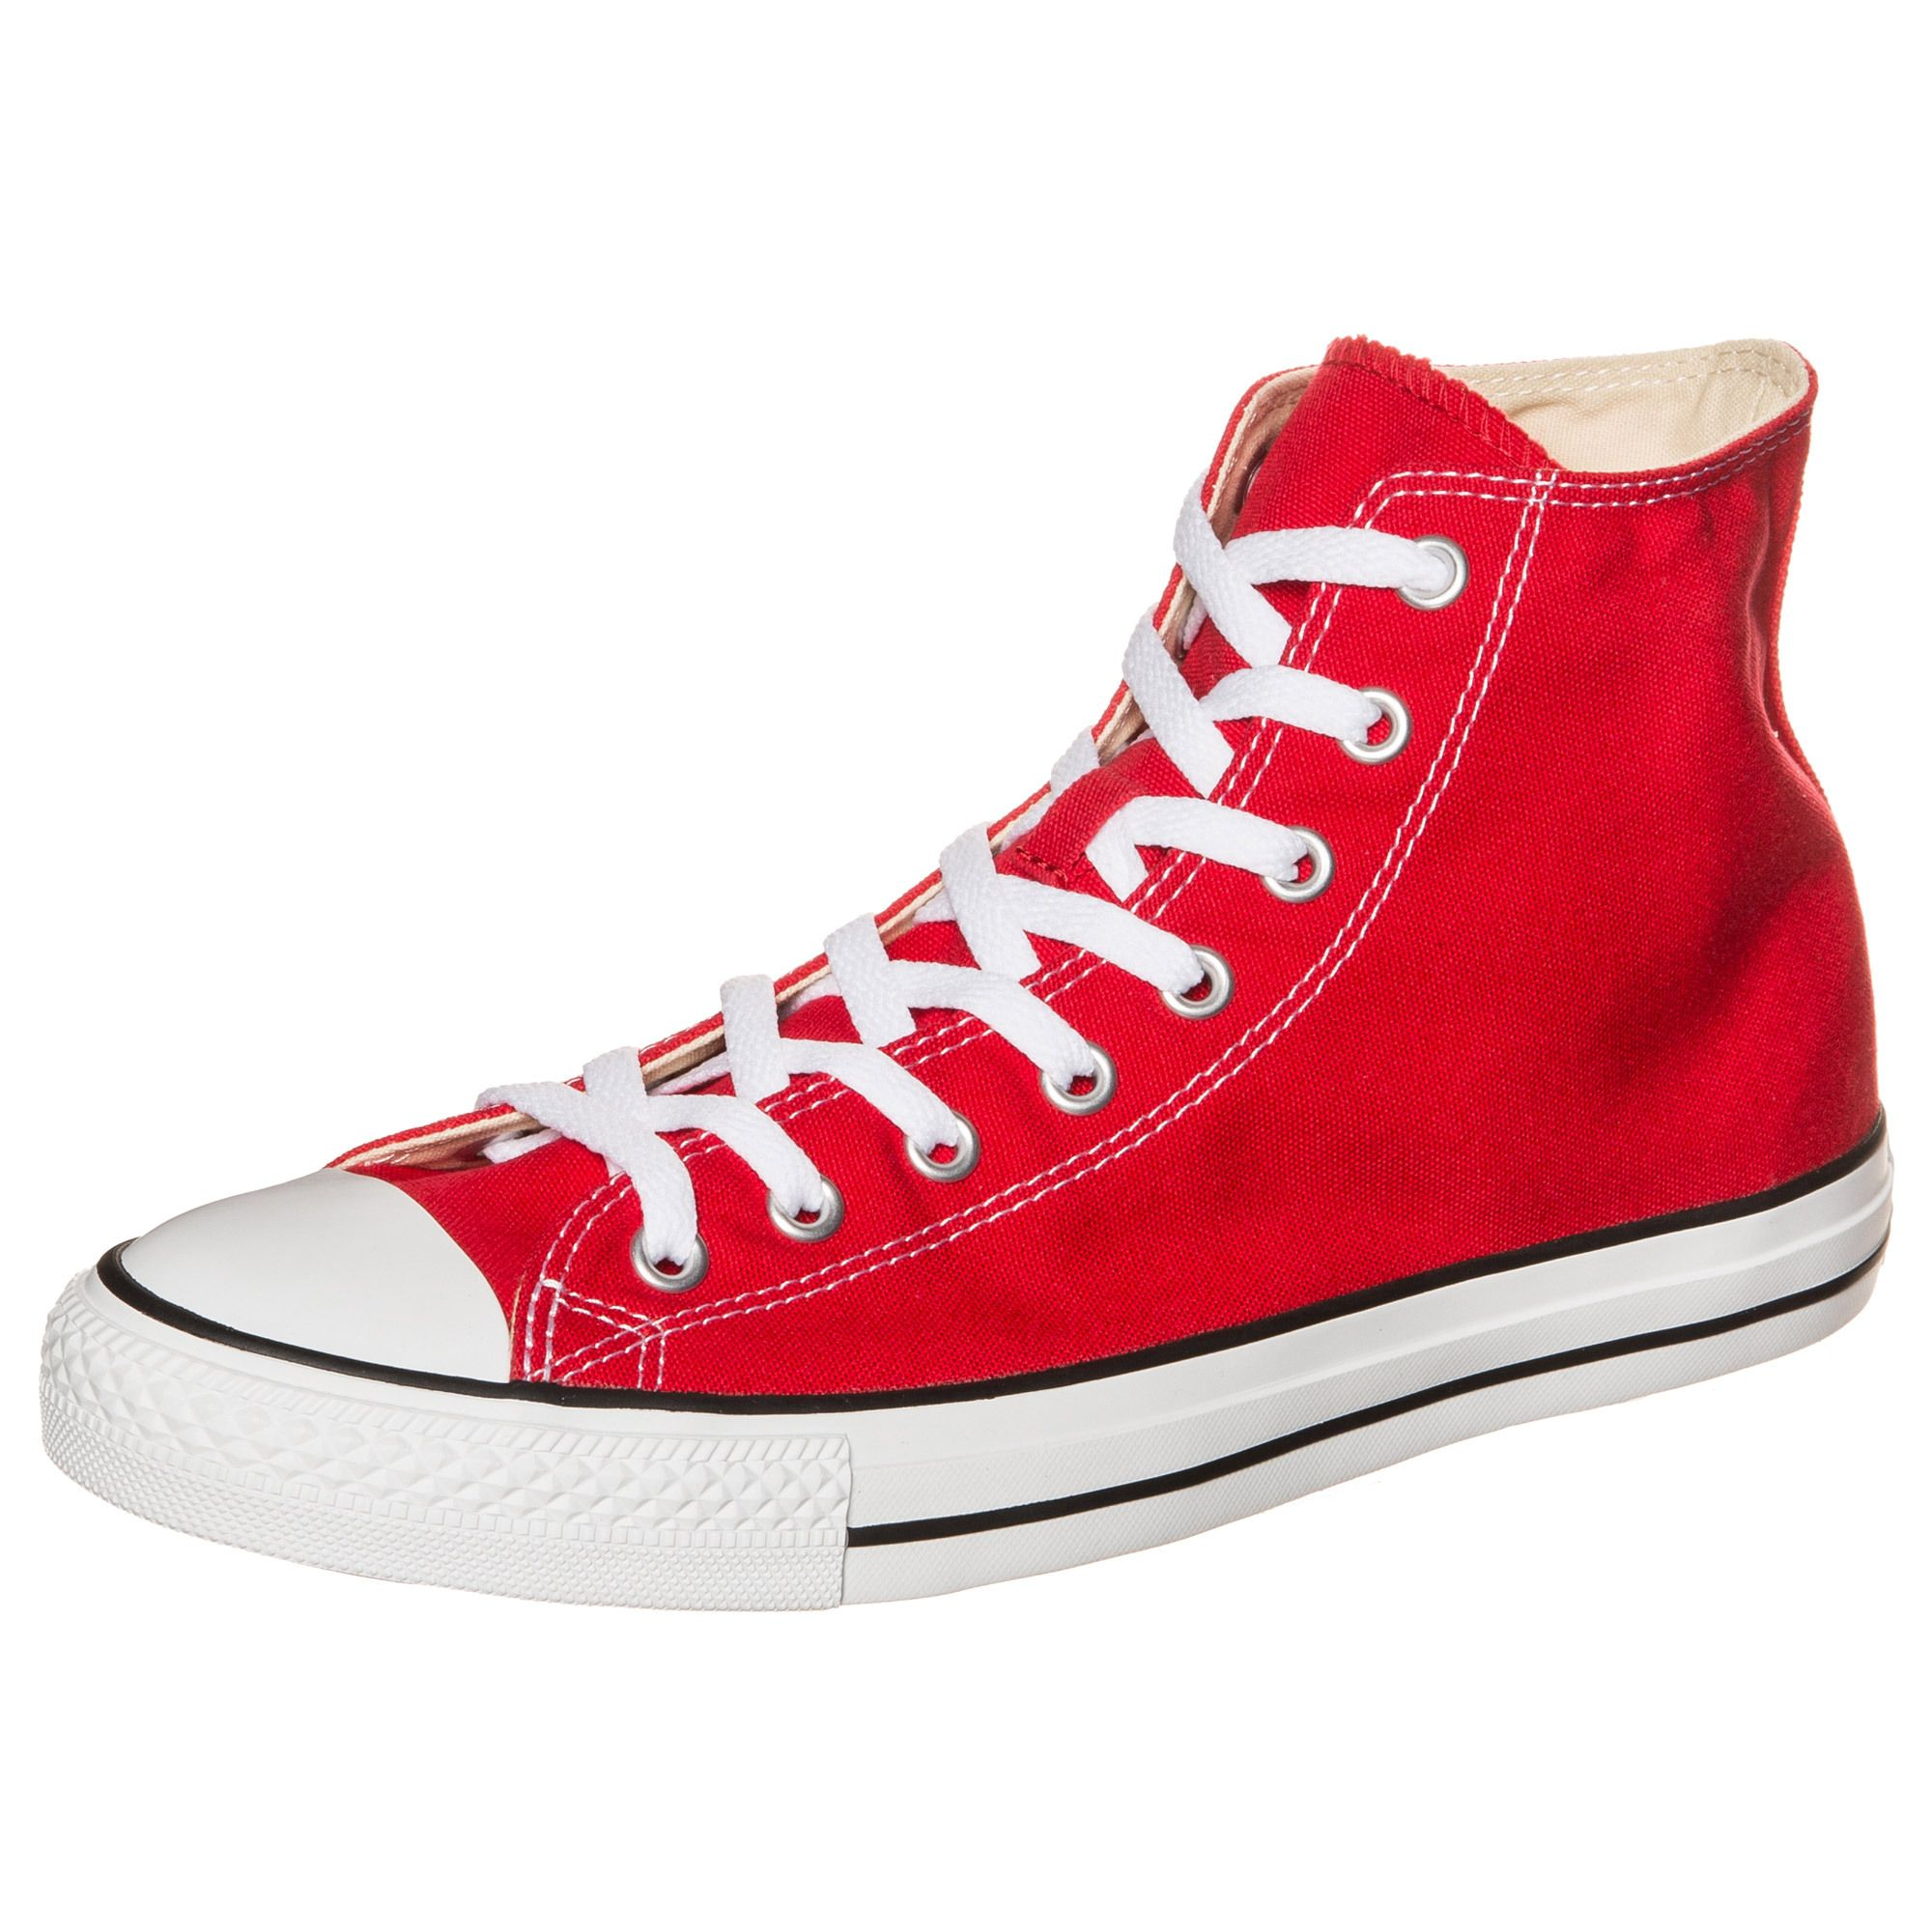 CONVERSE Converse Chuck Taylor All Star Core High Sneaker